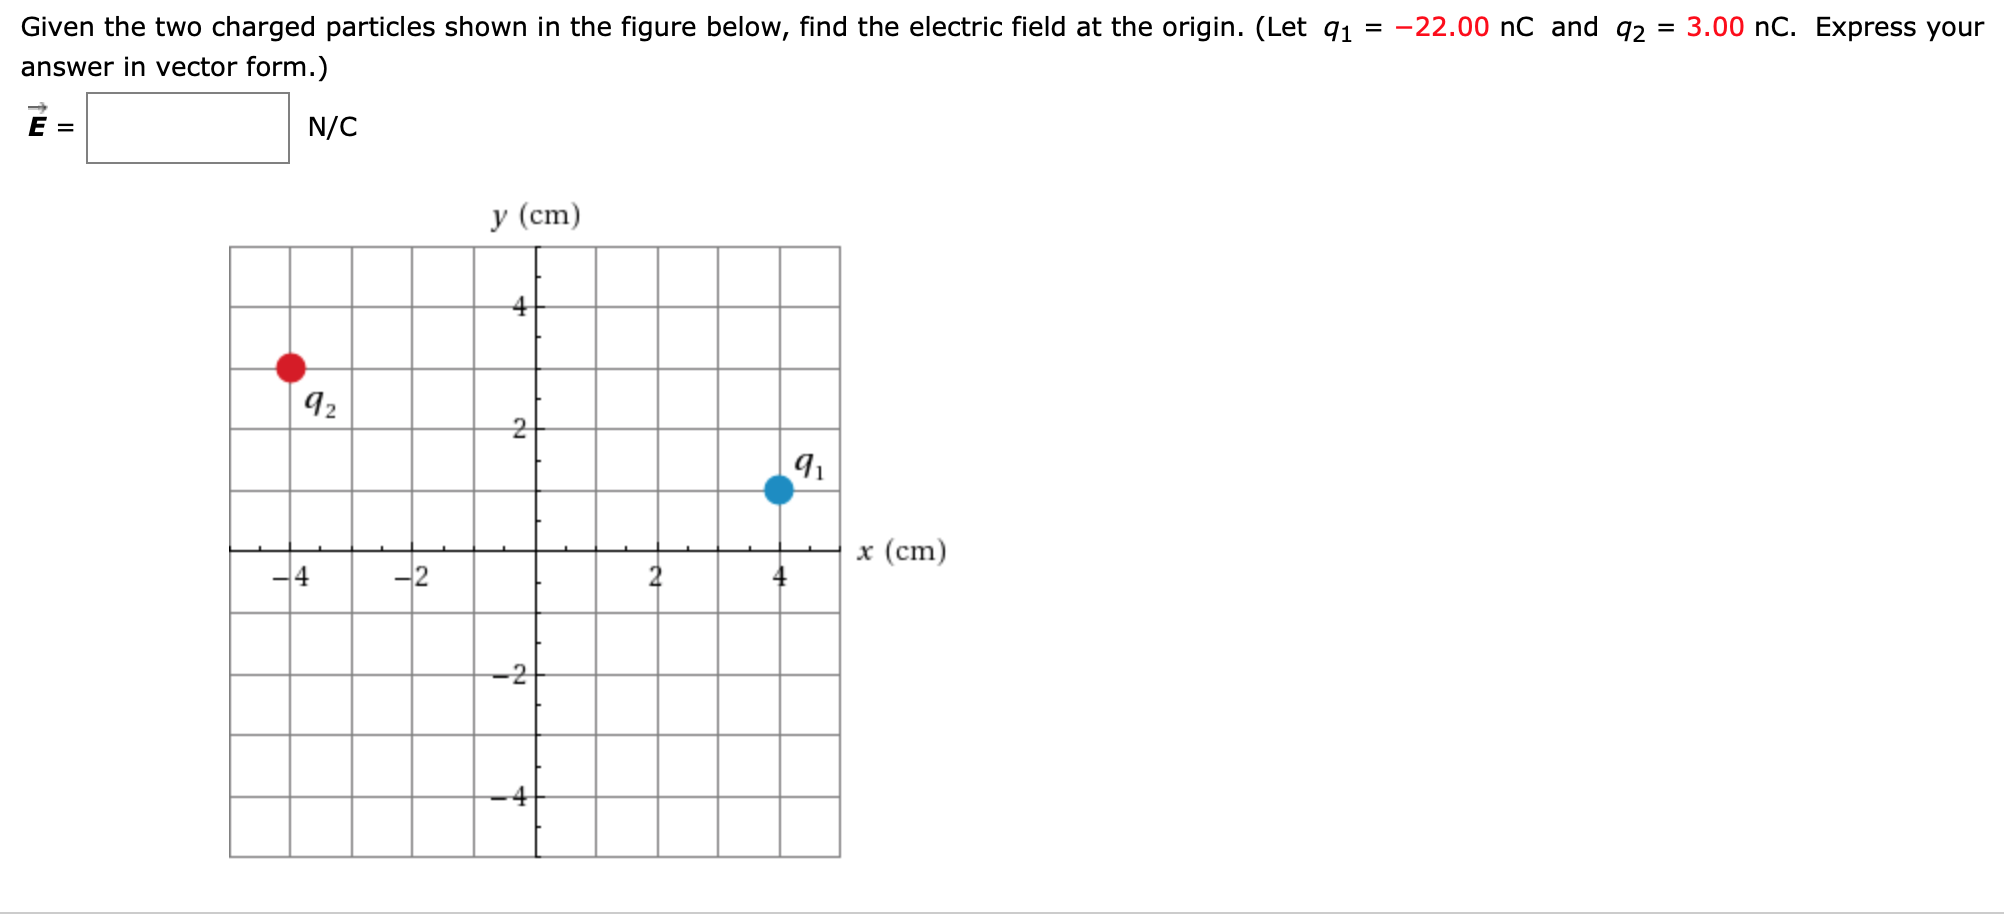 Given the two charged particles shown in the figure below, find the electric field at the origin. (Let 91 = -22.00 nC and 92